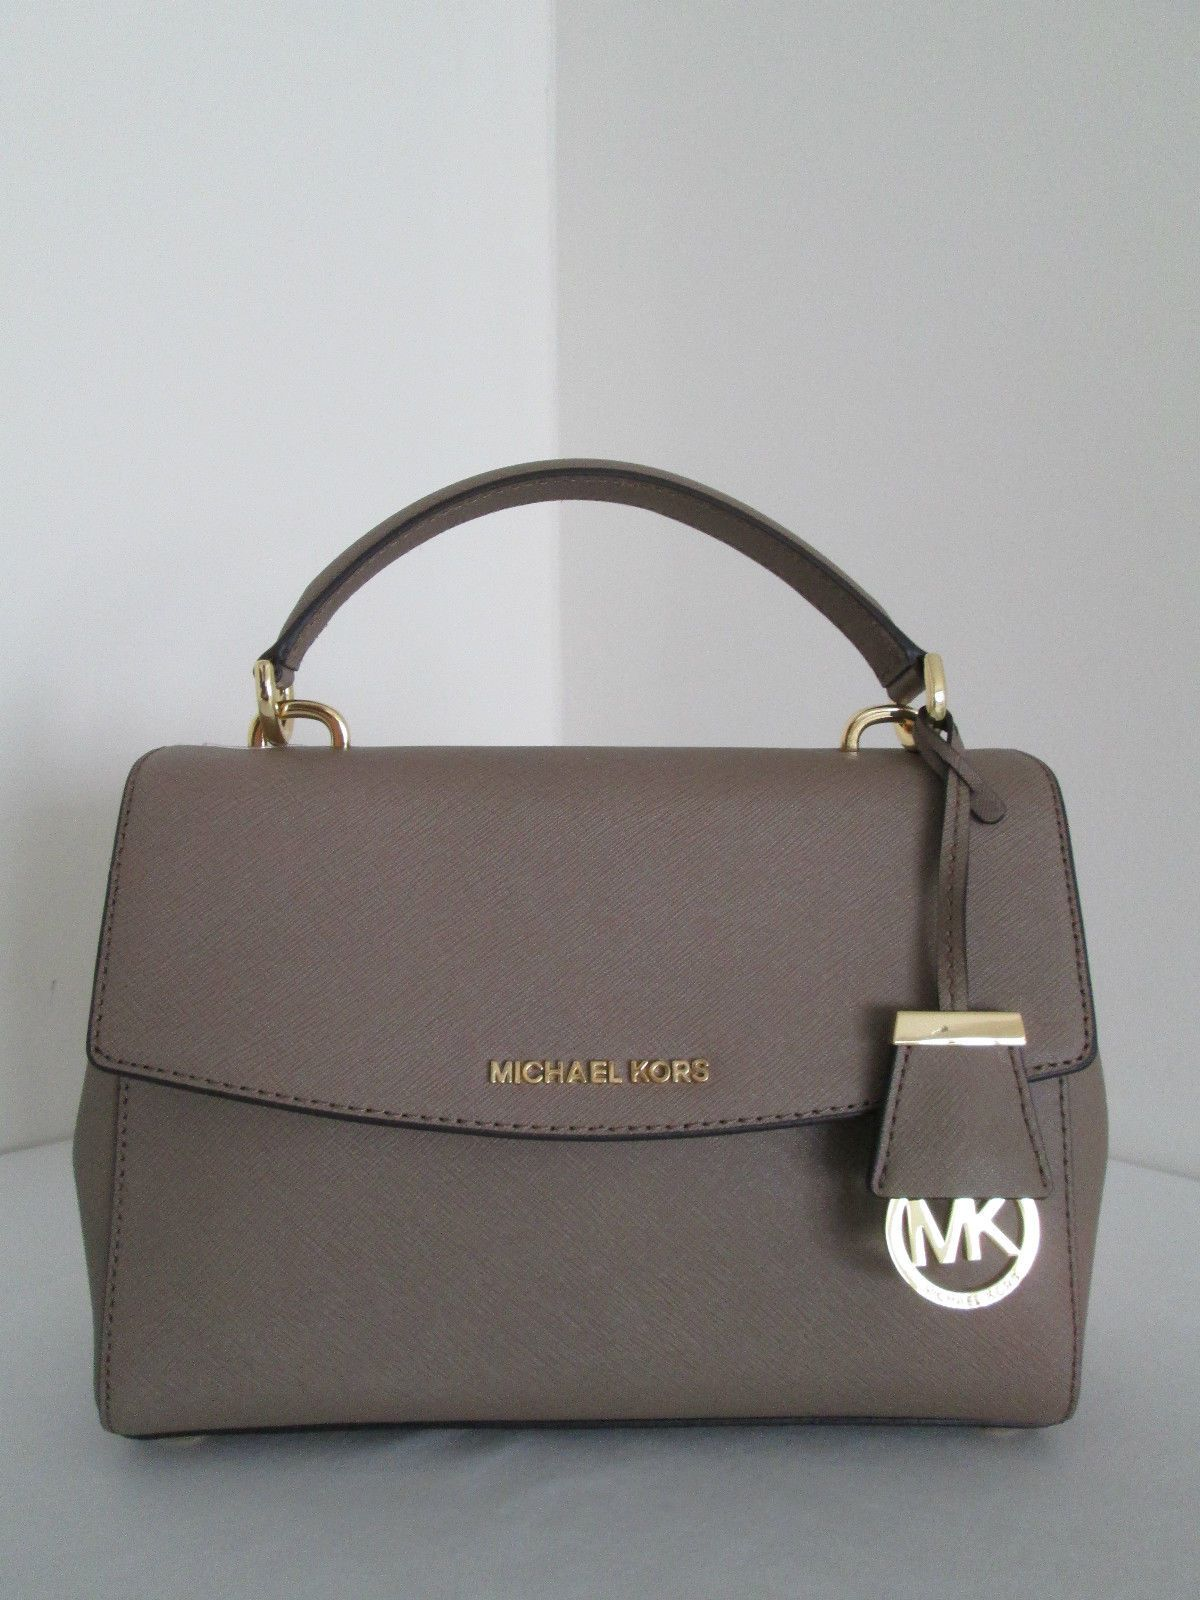 cca0e888b2b3 NWT New Michael Kors Ava Dark Dune Small Satchel Saffiano Leather ...